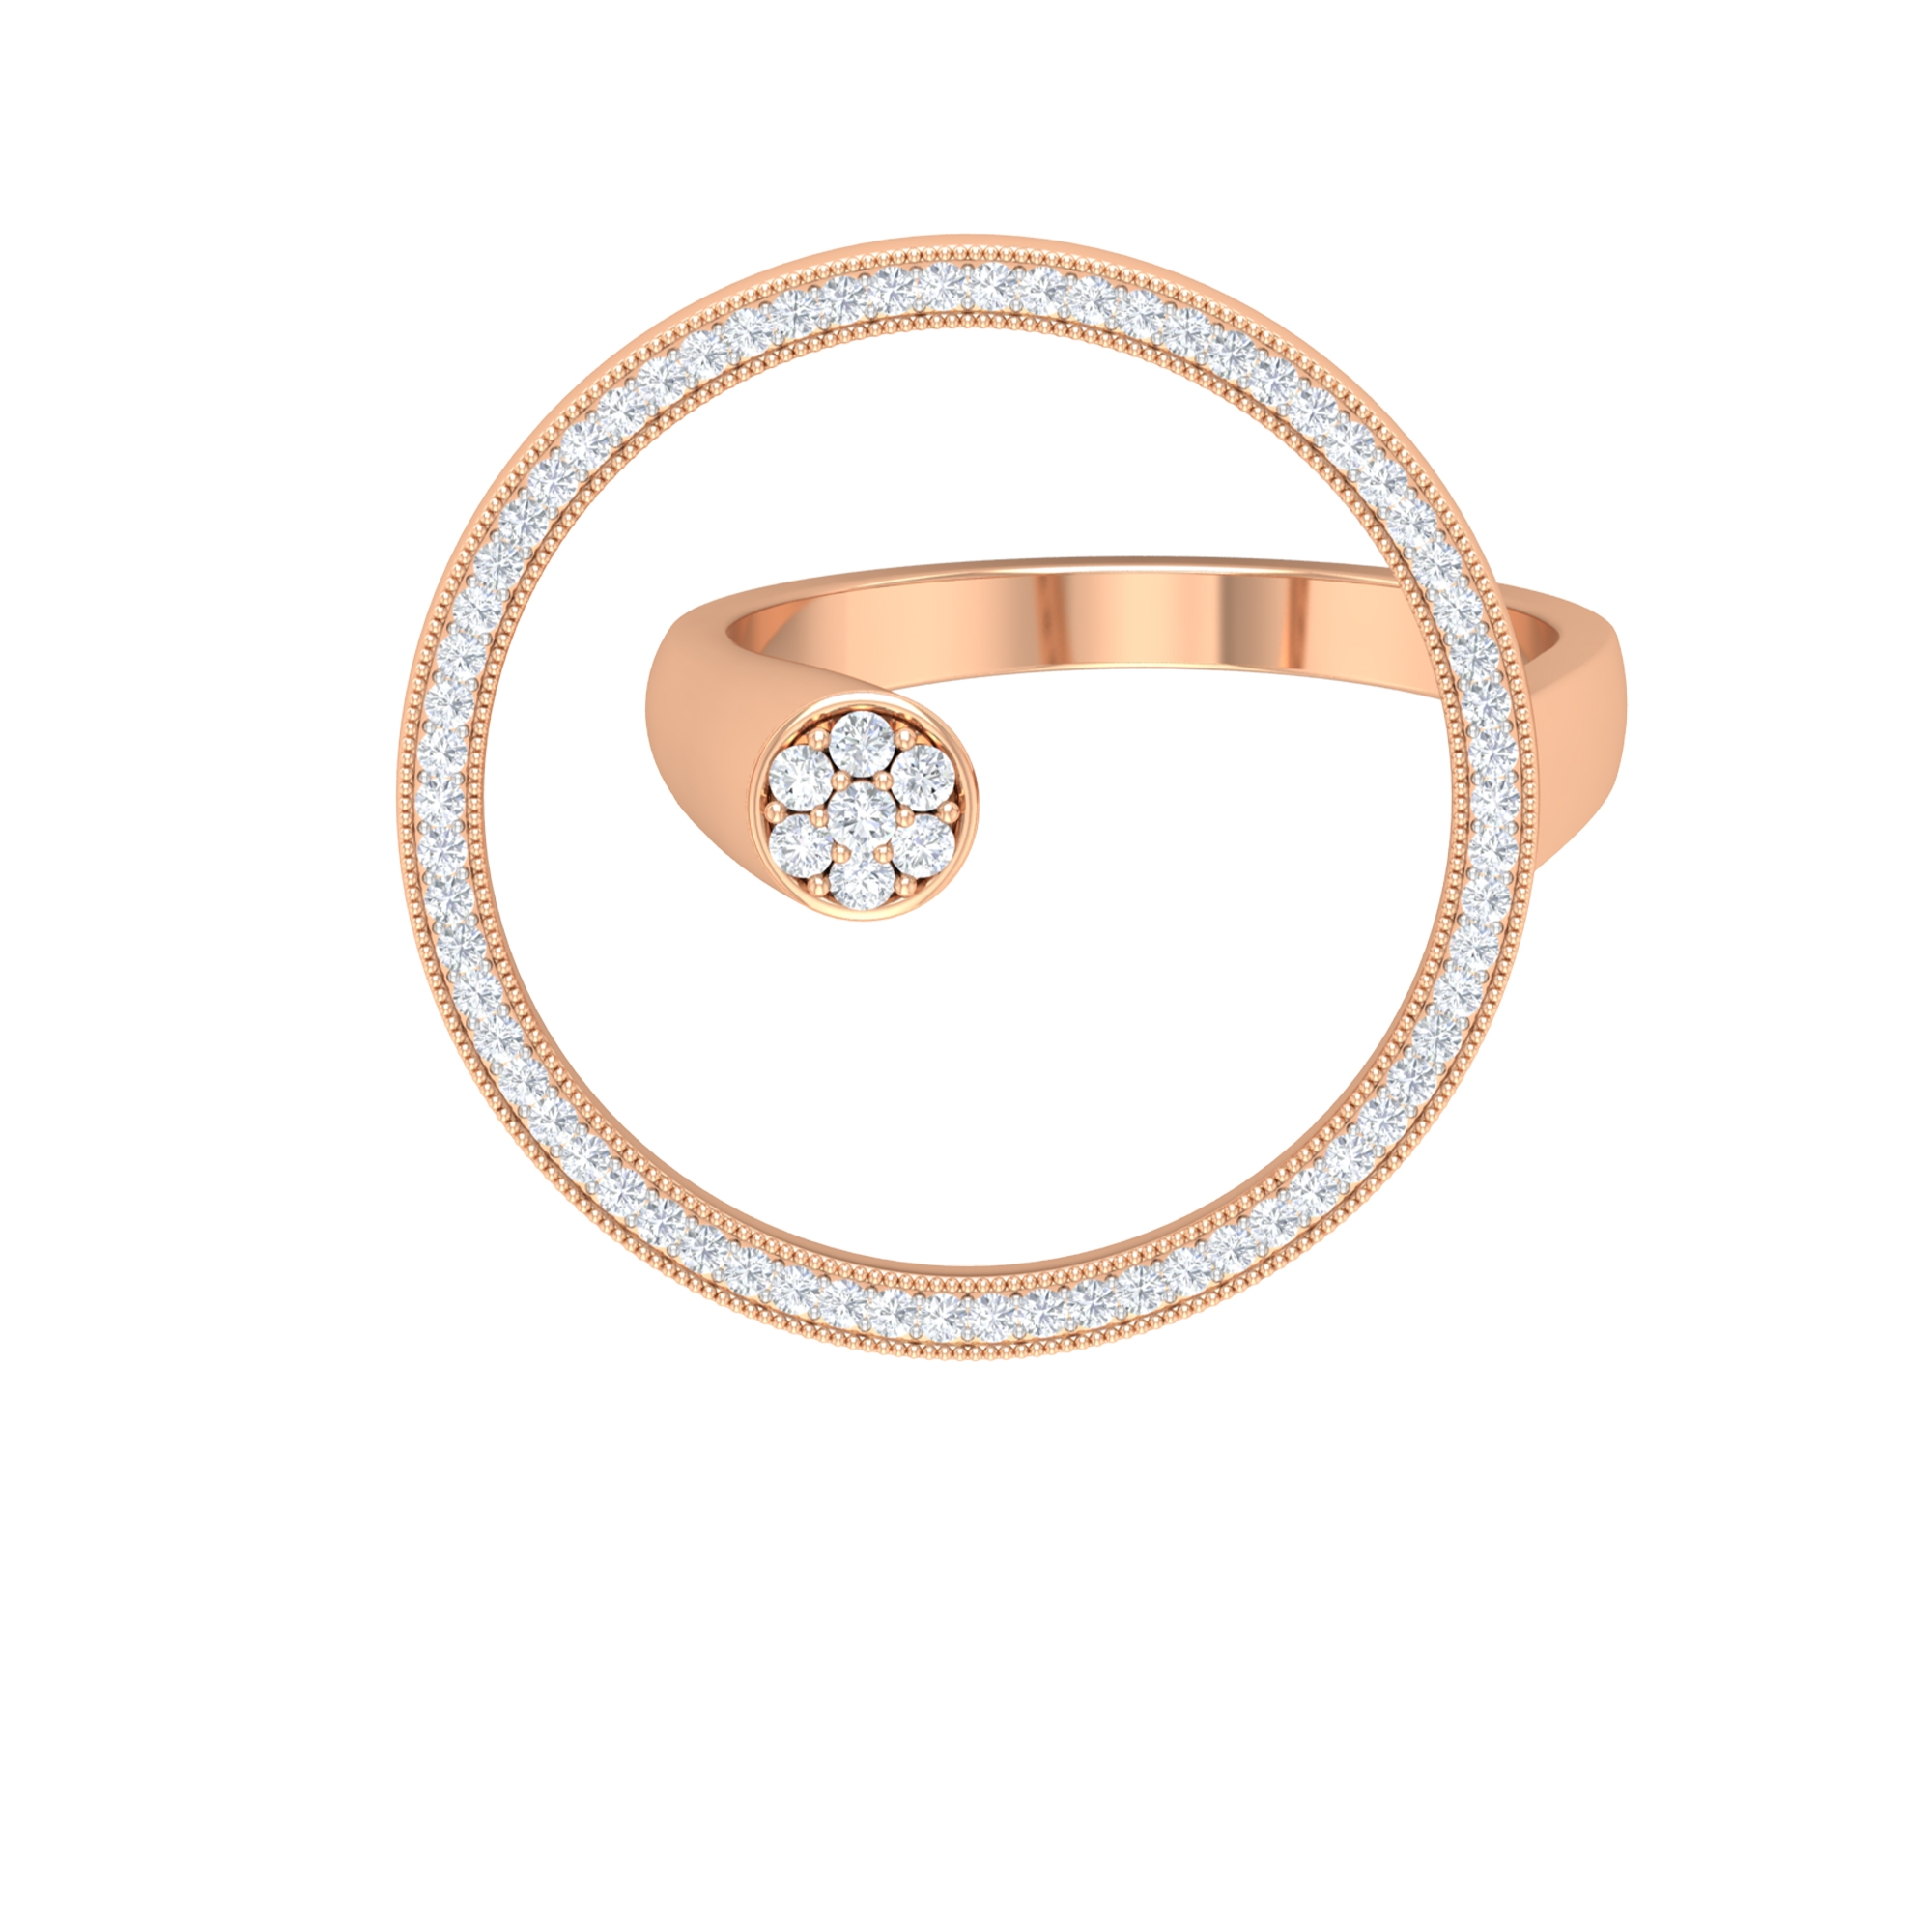 1/2 CT Prong Set Diamond Floral Wrap Ring with Eternity